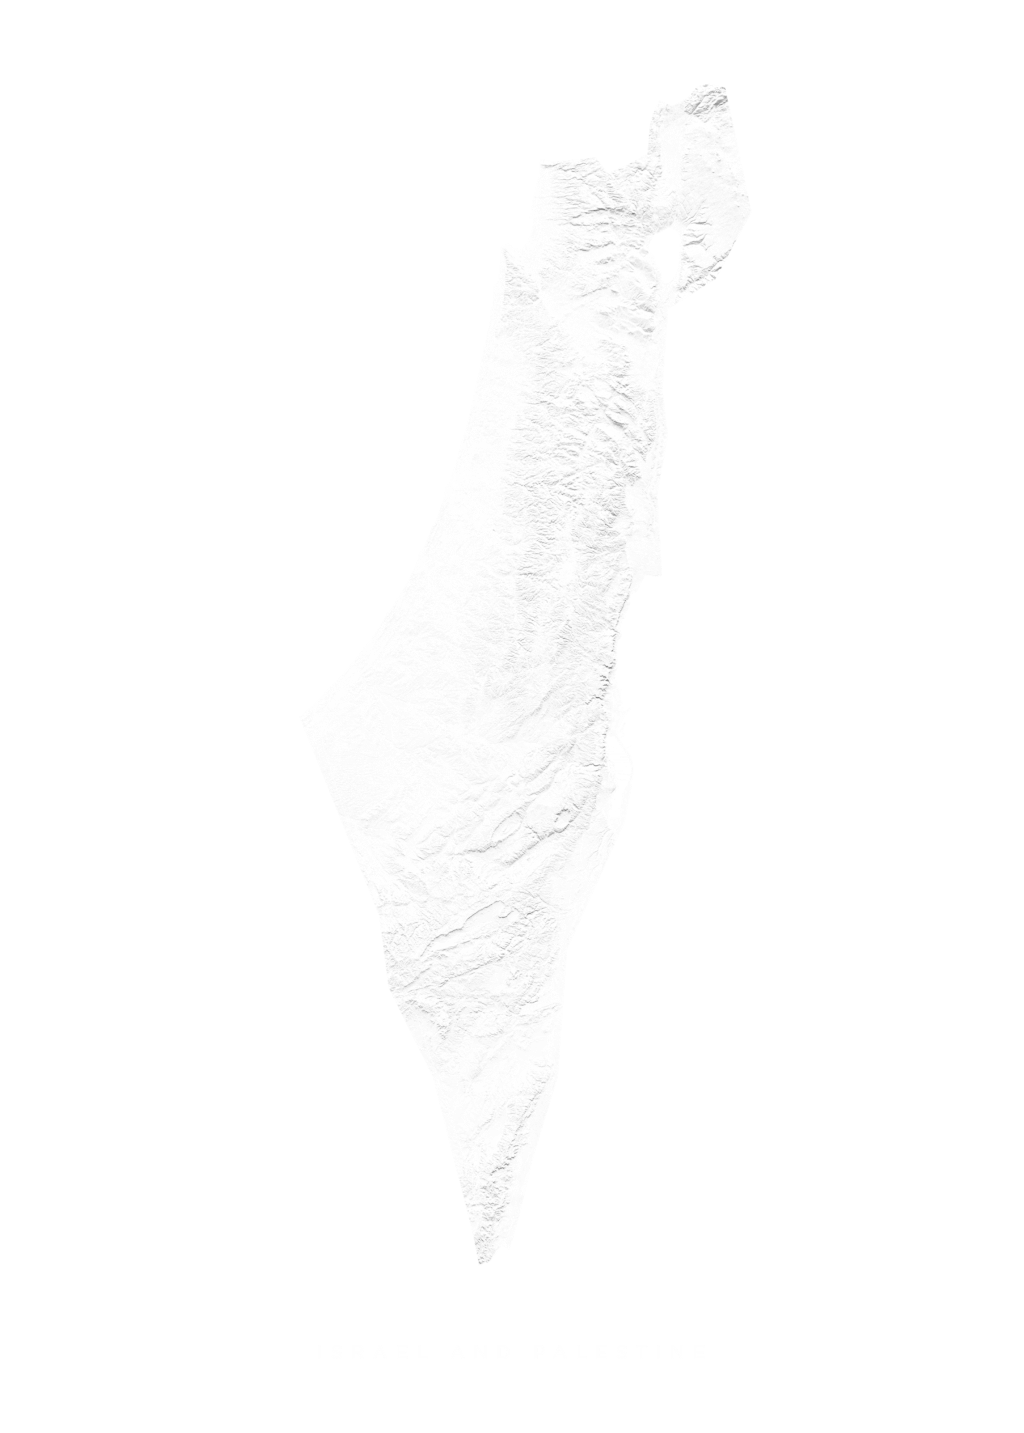 Israel And Palestine wall map